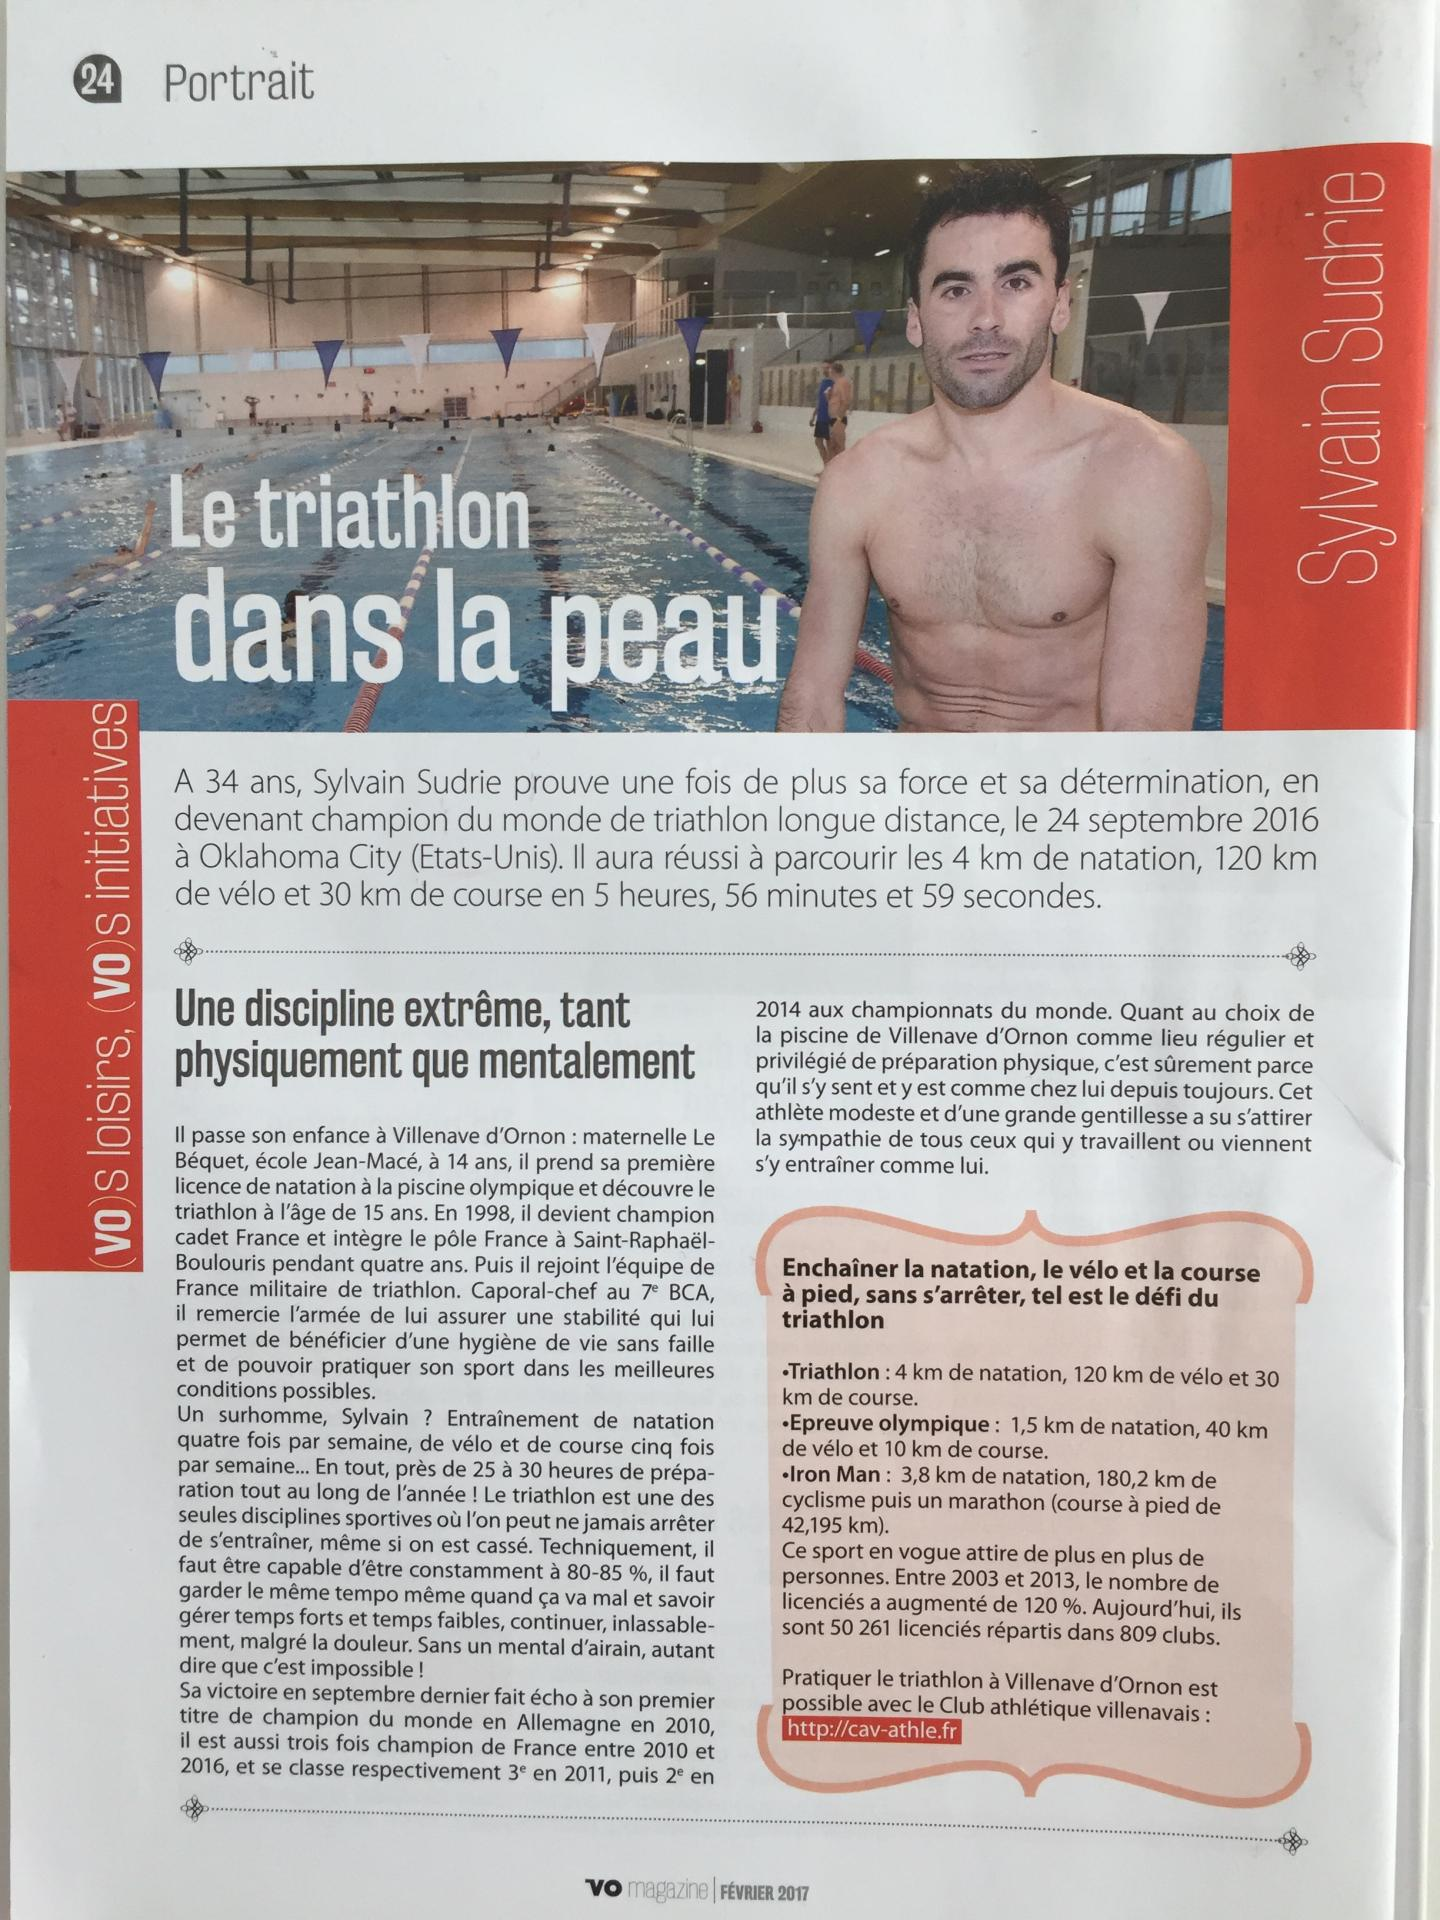 Journal de la ville de Gradignan